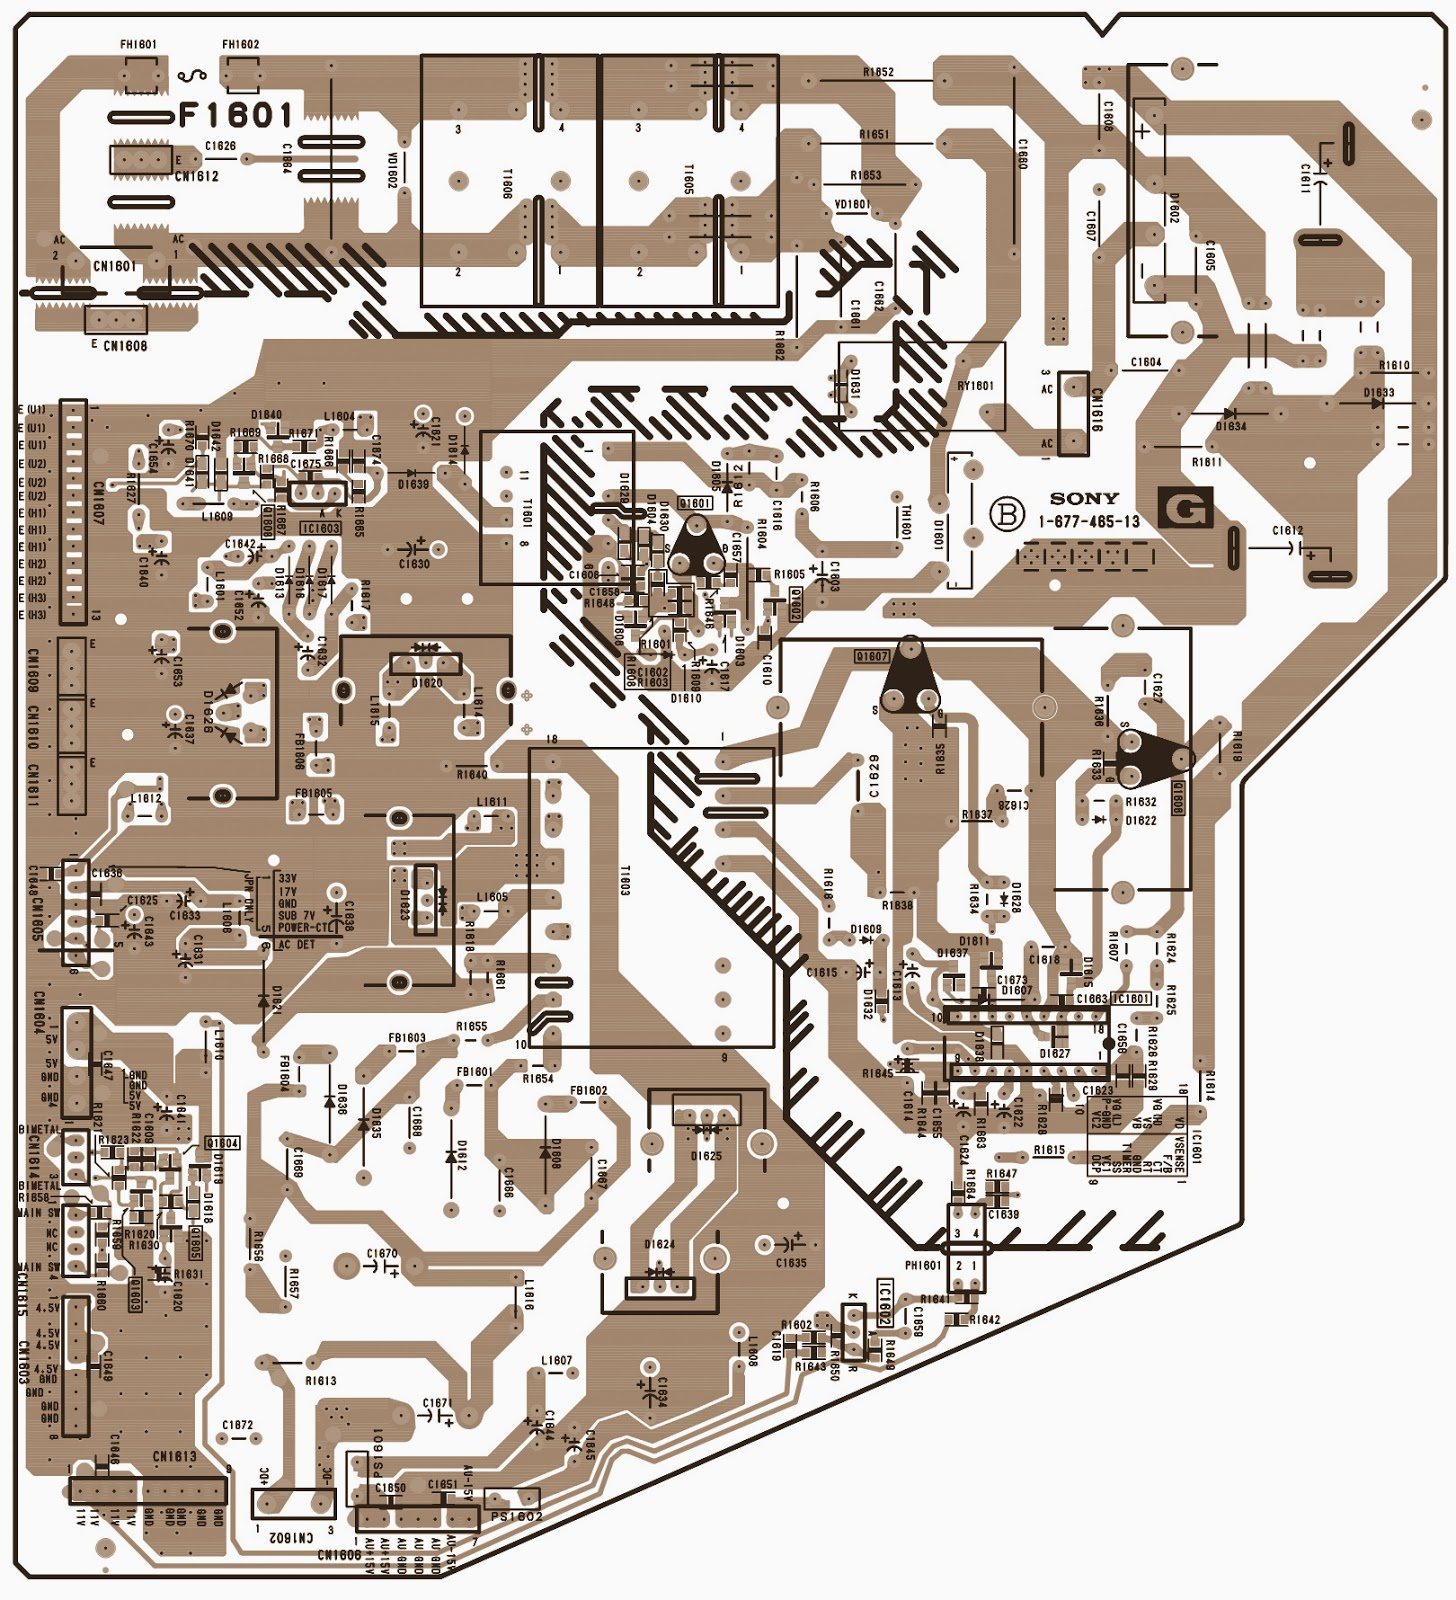 Electro help: POWER SUPPLY - G-BOARD - SCHEMATIC (Circuit ...